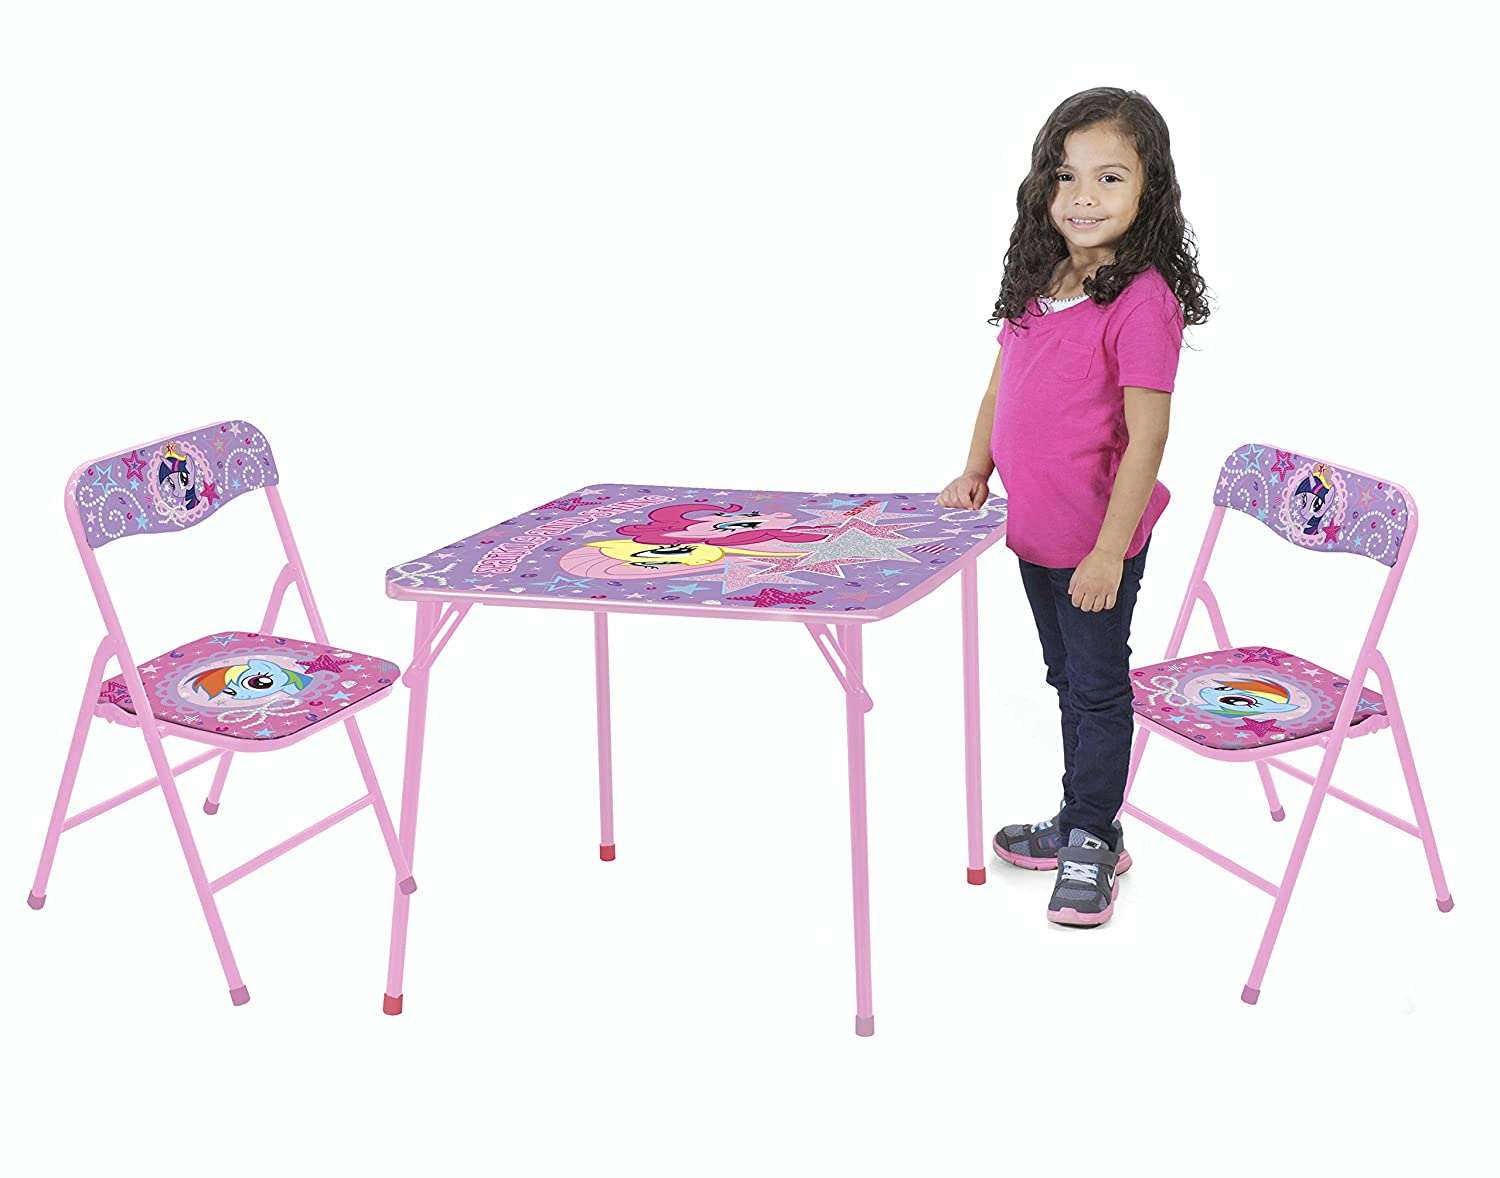 sc 1 st  Amazon.com & Amazon.com: My Little Pony Table and Chair Set (3-Piece): Toys u0026 Games